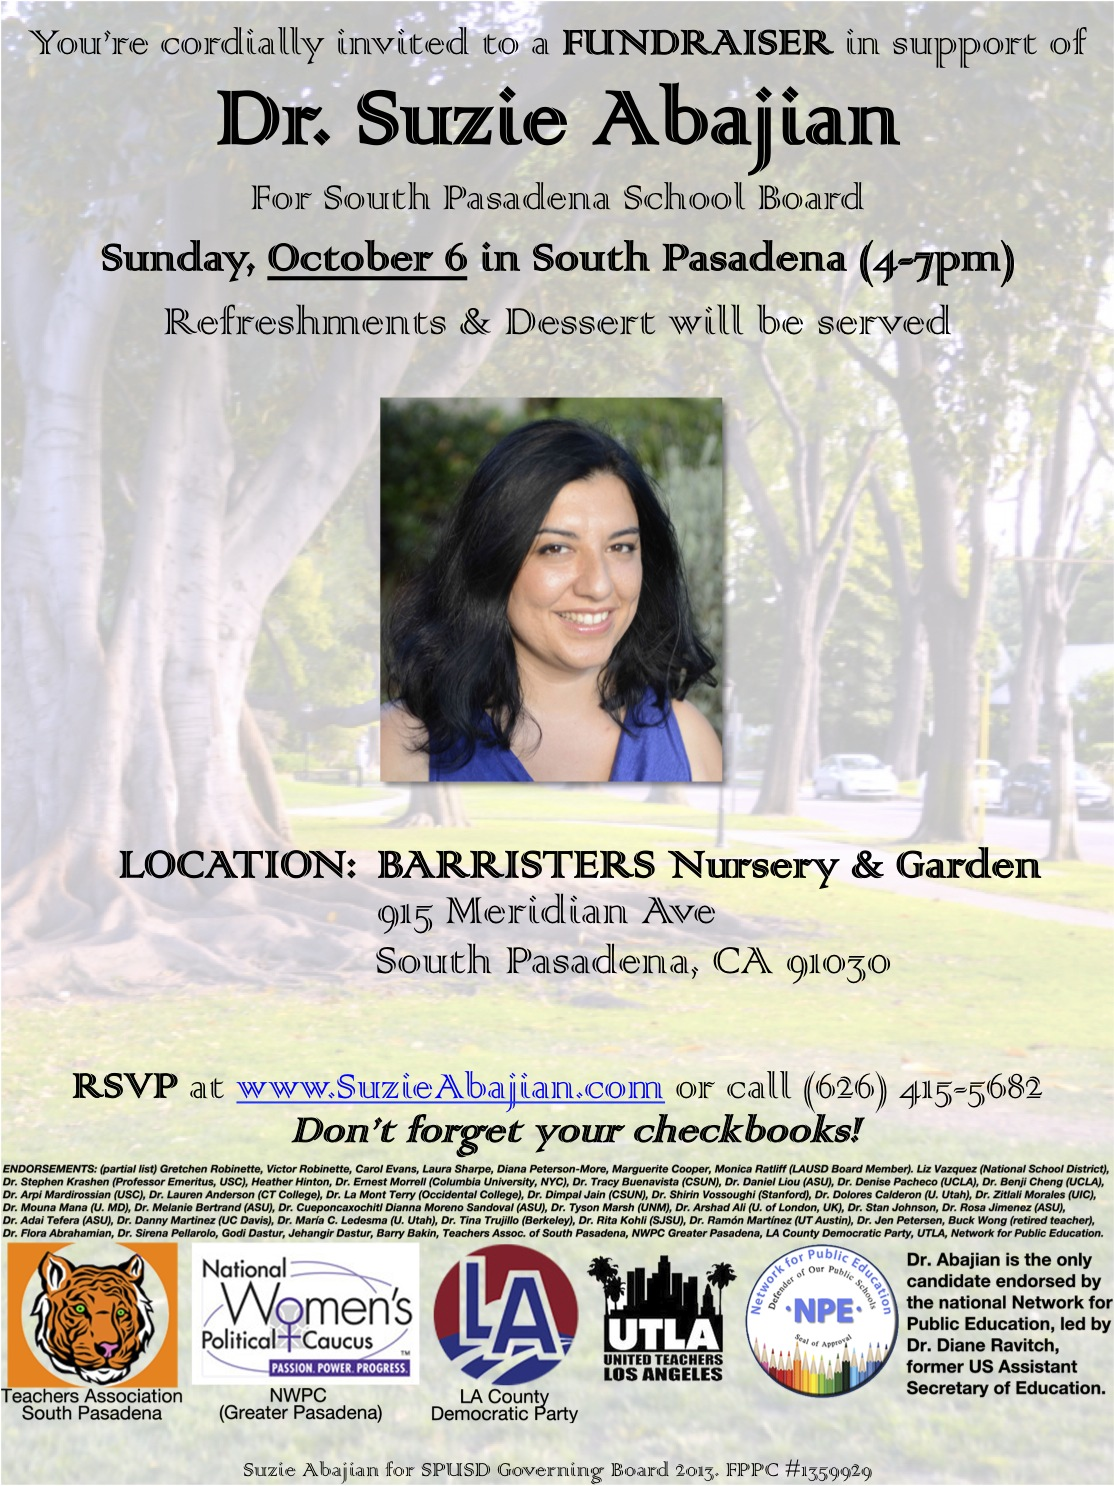 Suzie_Abajian_fundraiser_flyer_Sunday_Oct_6-13.jpg